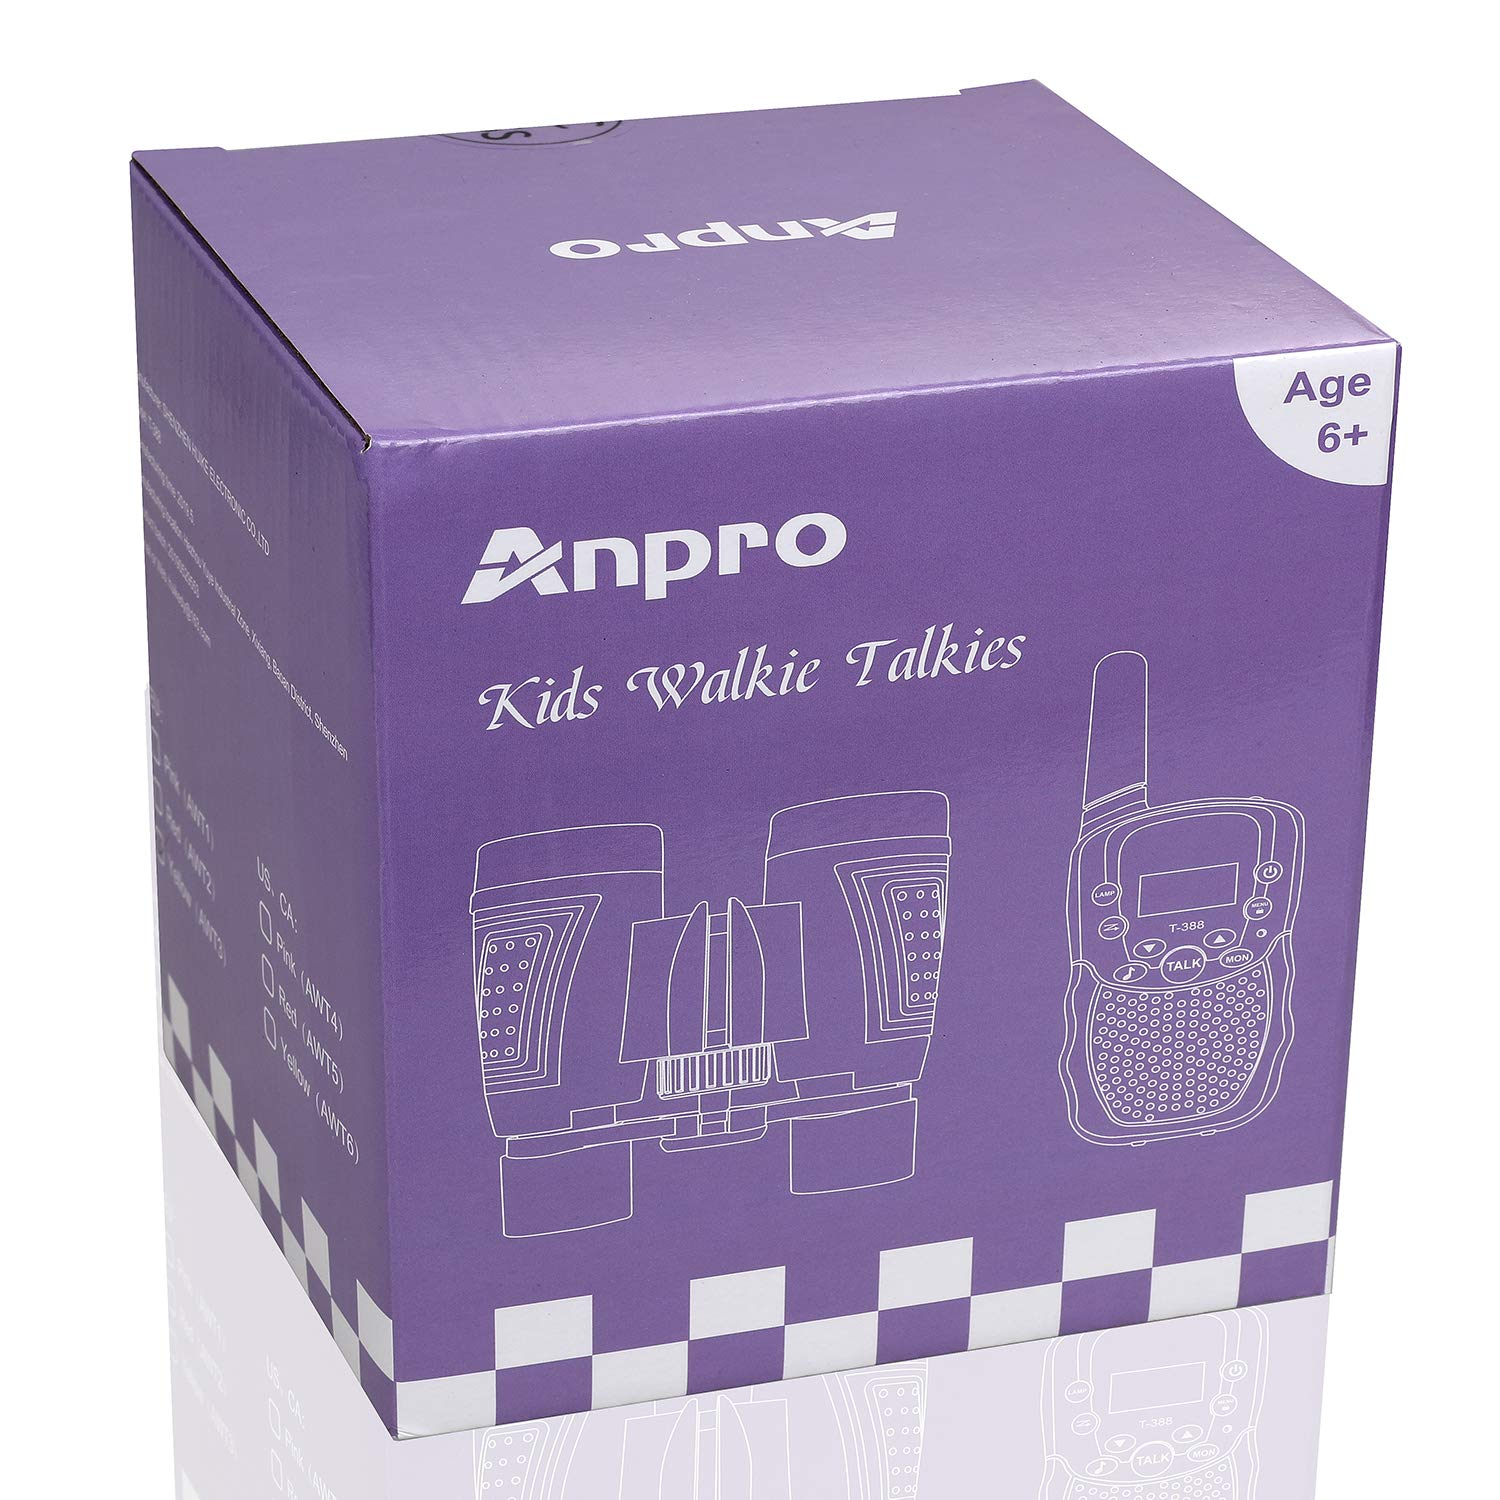 Anpro walkie talkies and Telescope Sets for Kids, 22 Channel 2 Way Radio 3 Mile Long Range Handheld Kids Walkie Talkies, Best Gifts & Top Toys for Boy & Girls for Outdoor Adventure Game(Pink) by Anpro (Image #7)